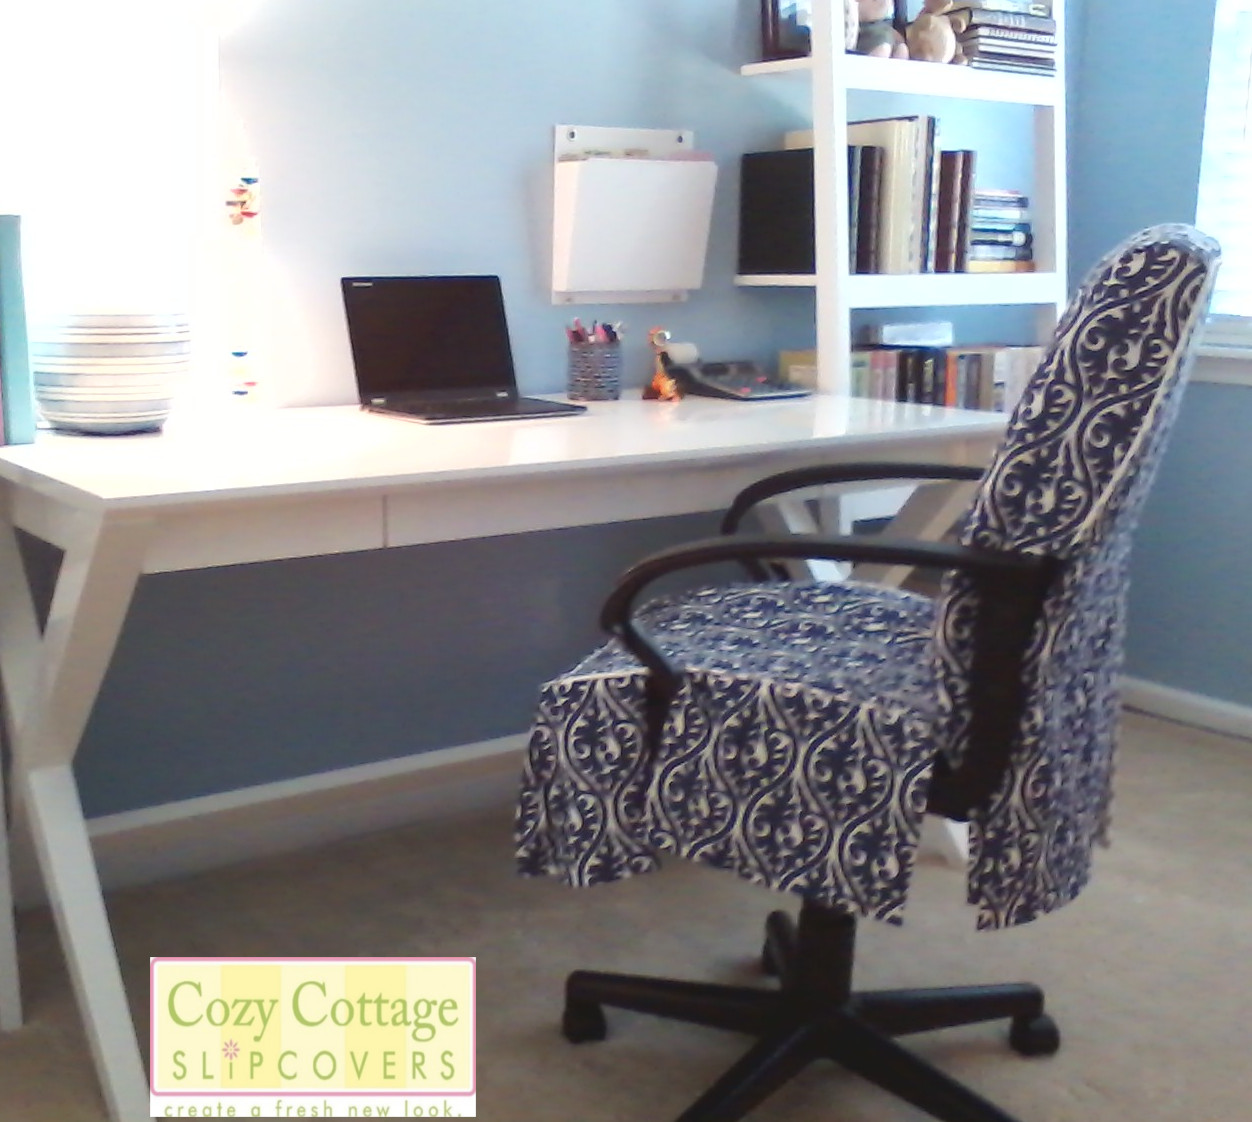 Cozy cottage slipcovers new office chair slipcovers -  Slipcovers Look In Their Office Space Metal Clasp Closure Posted By Cozy Cottage